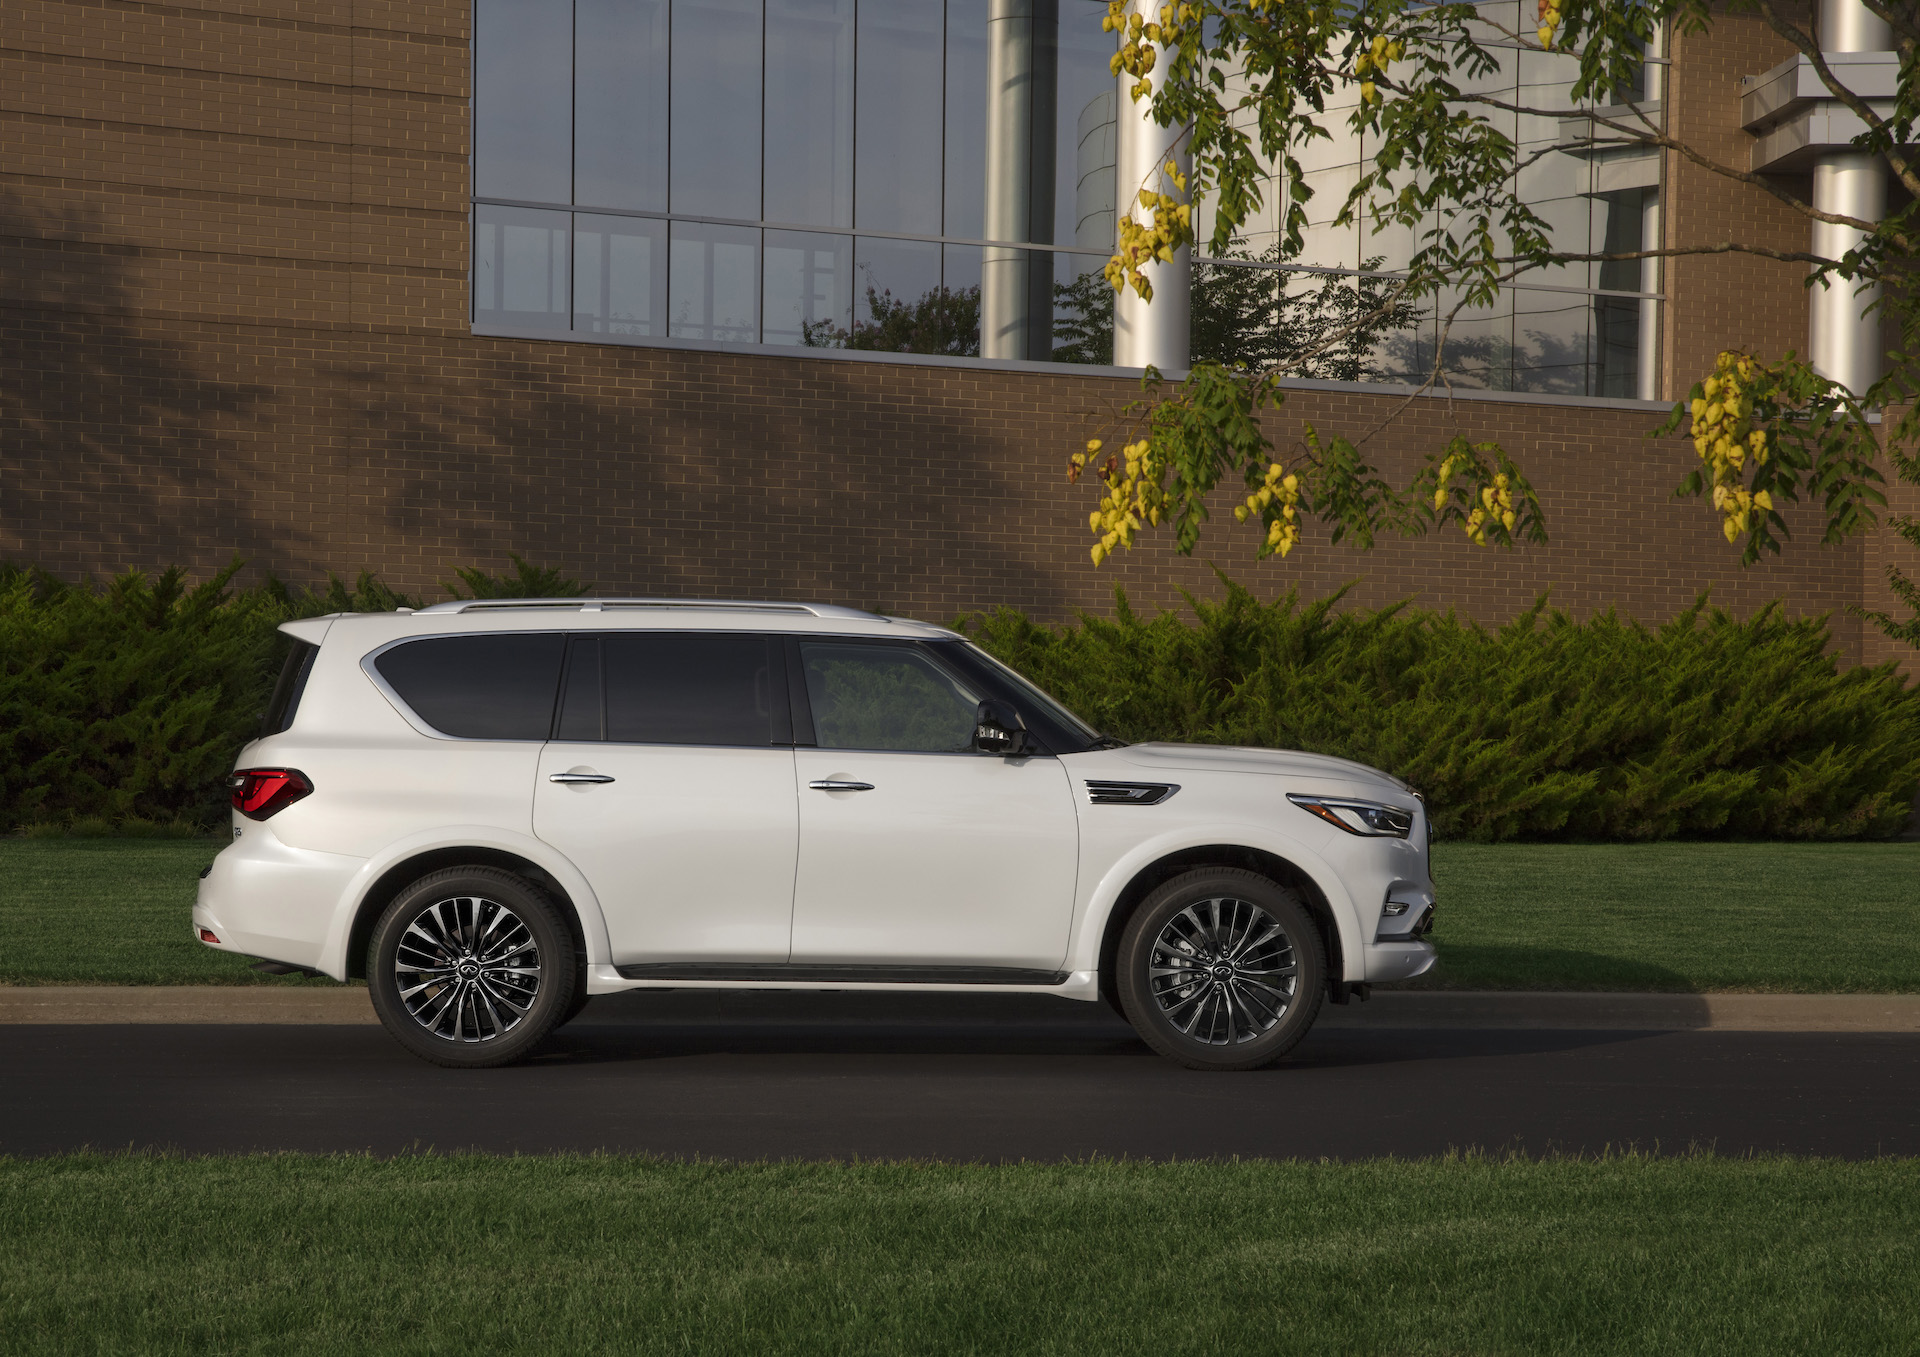 New And Used Infiniti Qx80 Prices Photos Reviews Specs The Car Connection